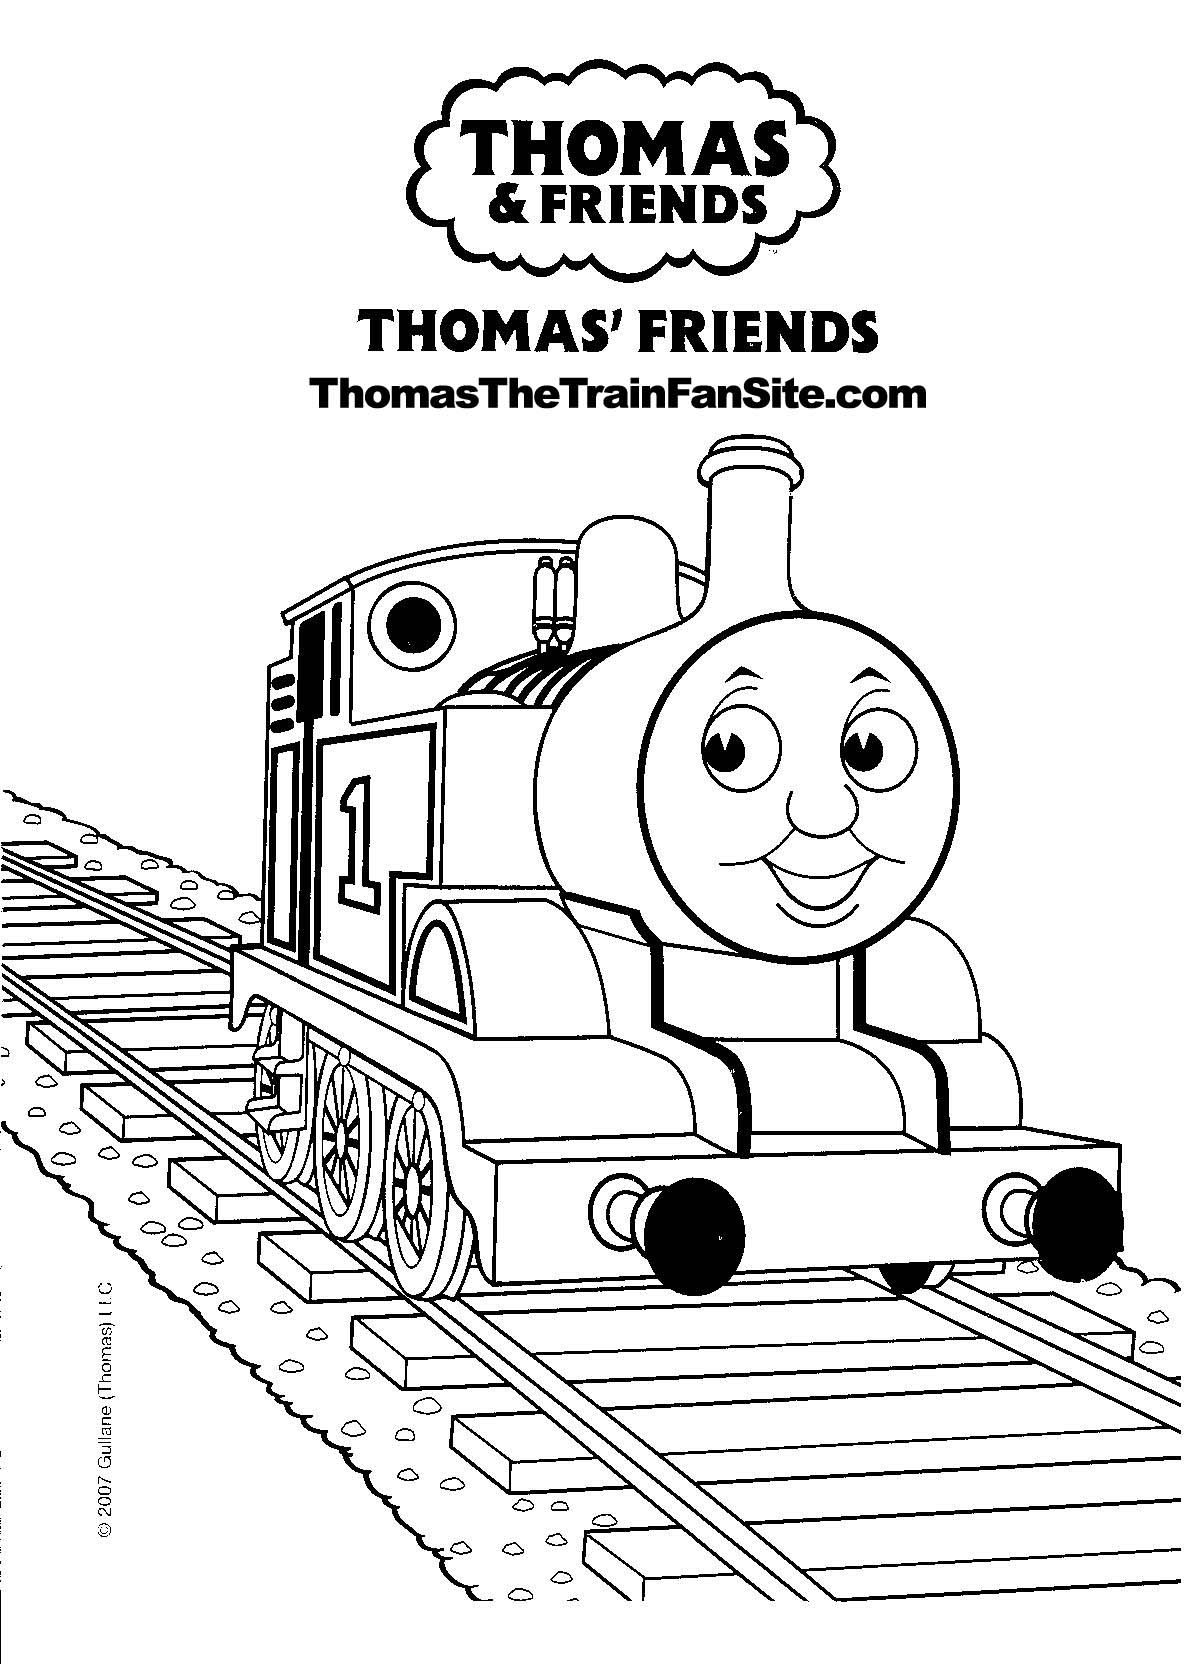 thomas the tank engine coloring pages birthday ; 3a098f571ac161a8c98dbf049a819565